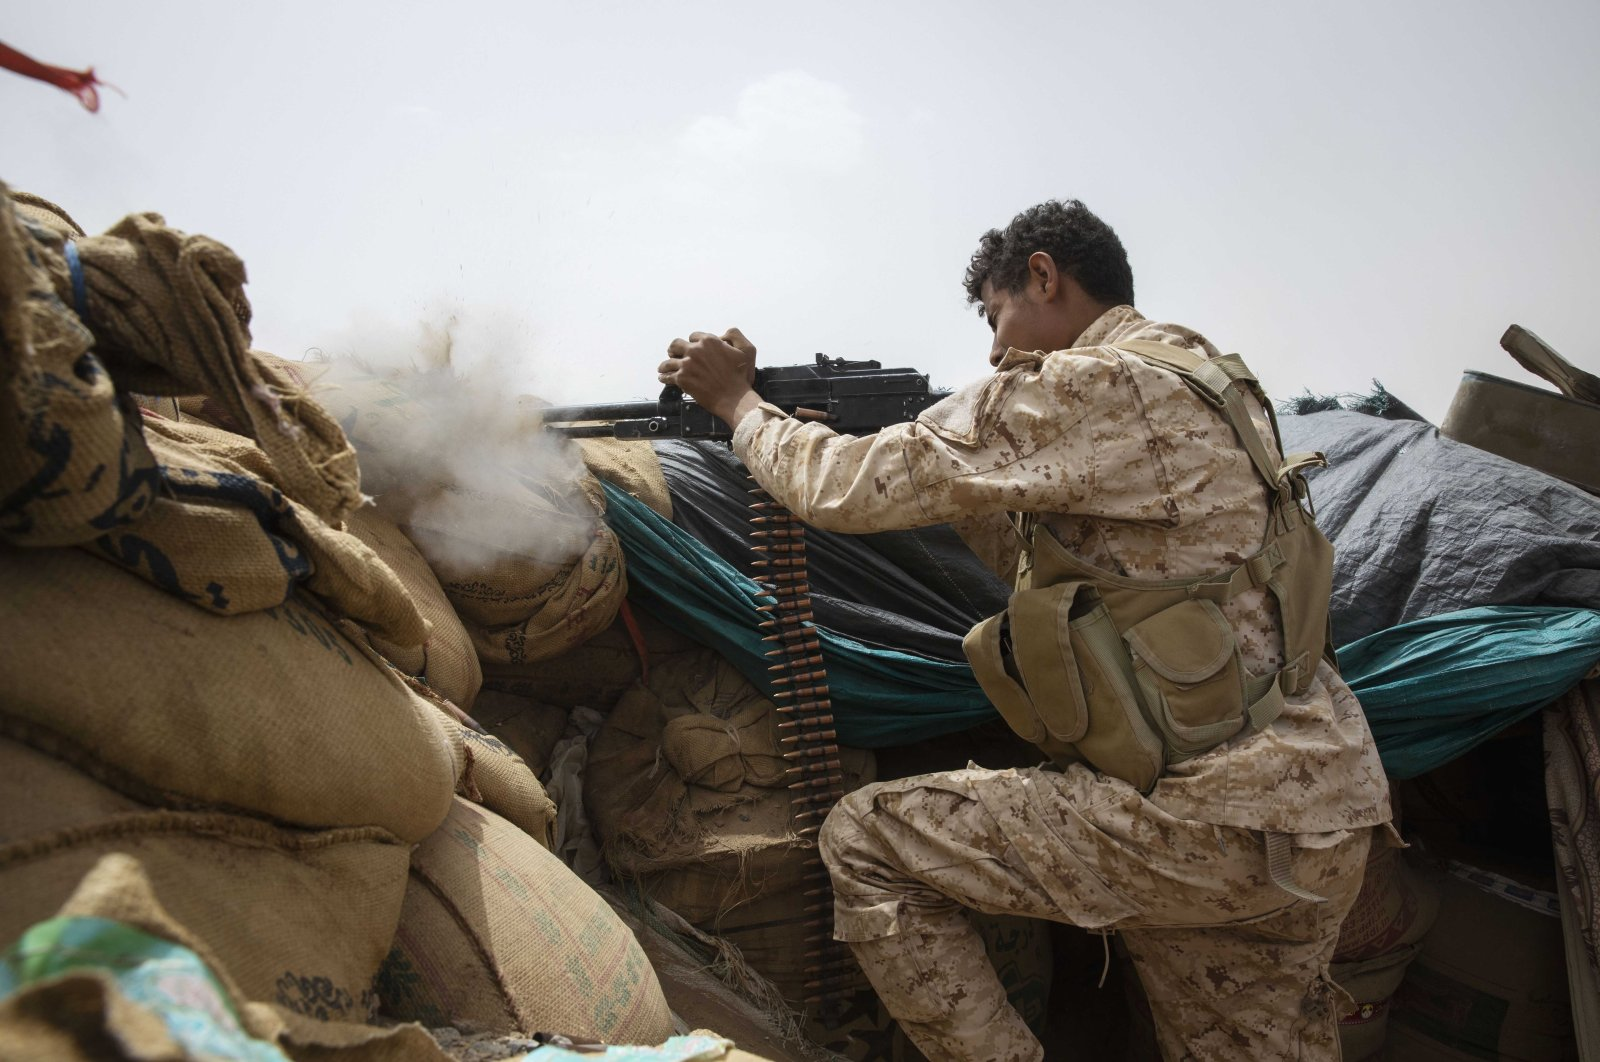 A Yemeni fighter backed by the Saudi-led coalition fires his weapon on the front lines of Marib, Yemen, June 19, 2021. (AP Photo)